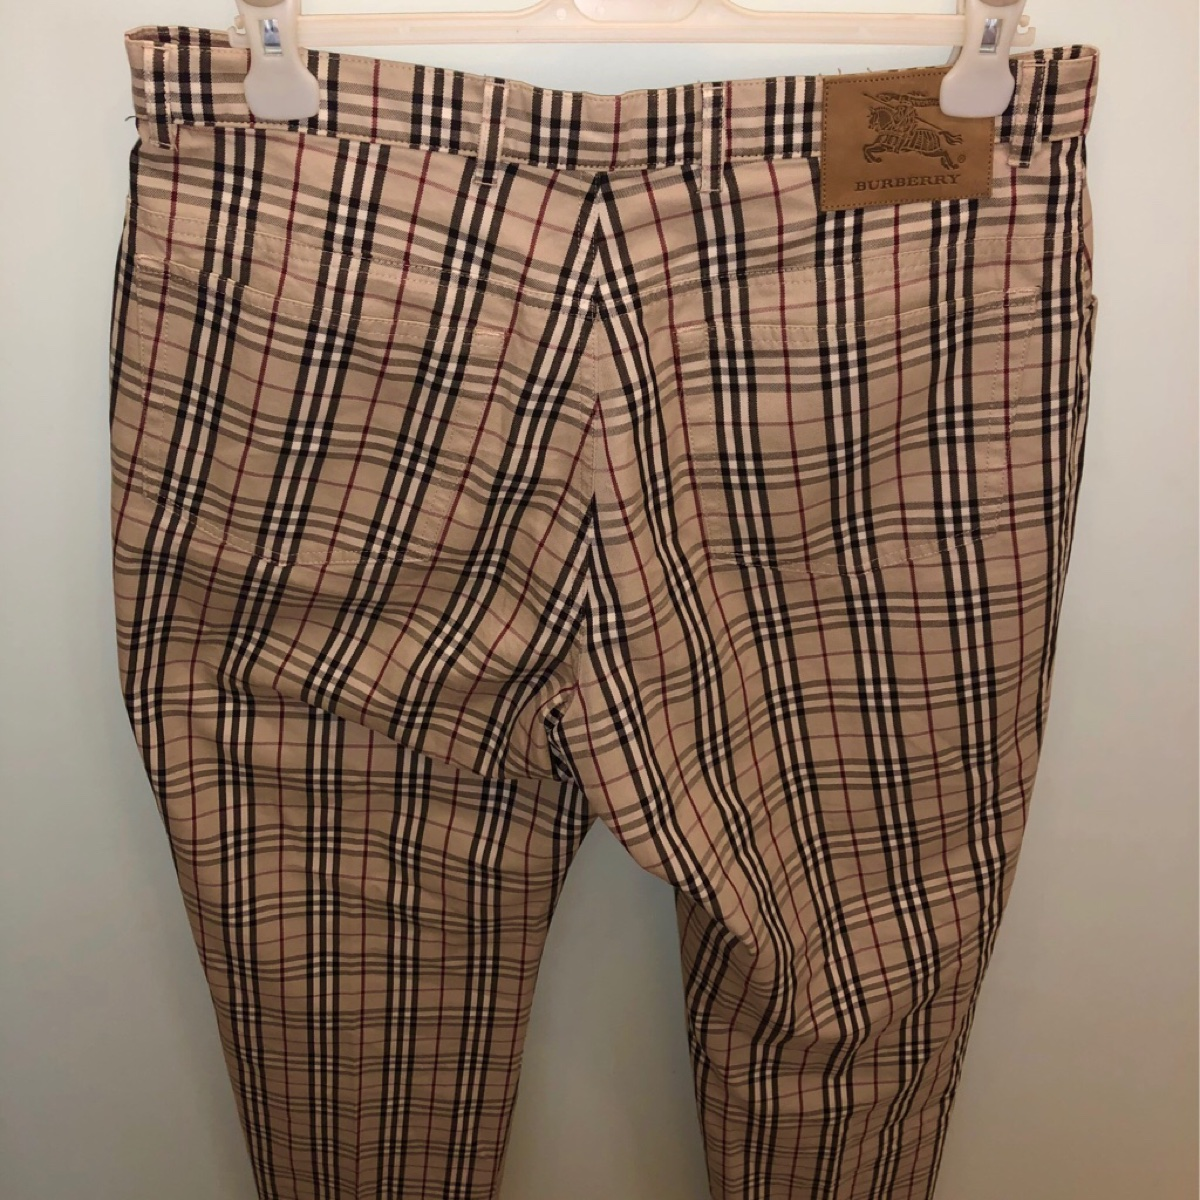 Offers🤝(34)Burberry Pants Classic Color